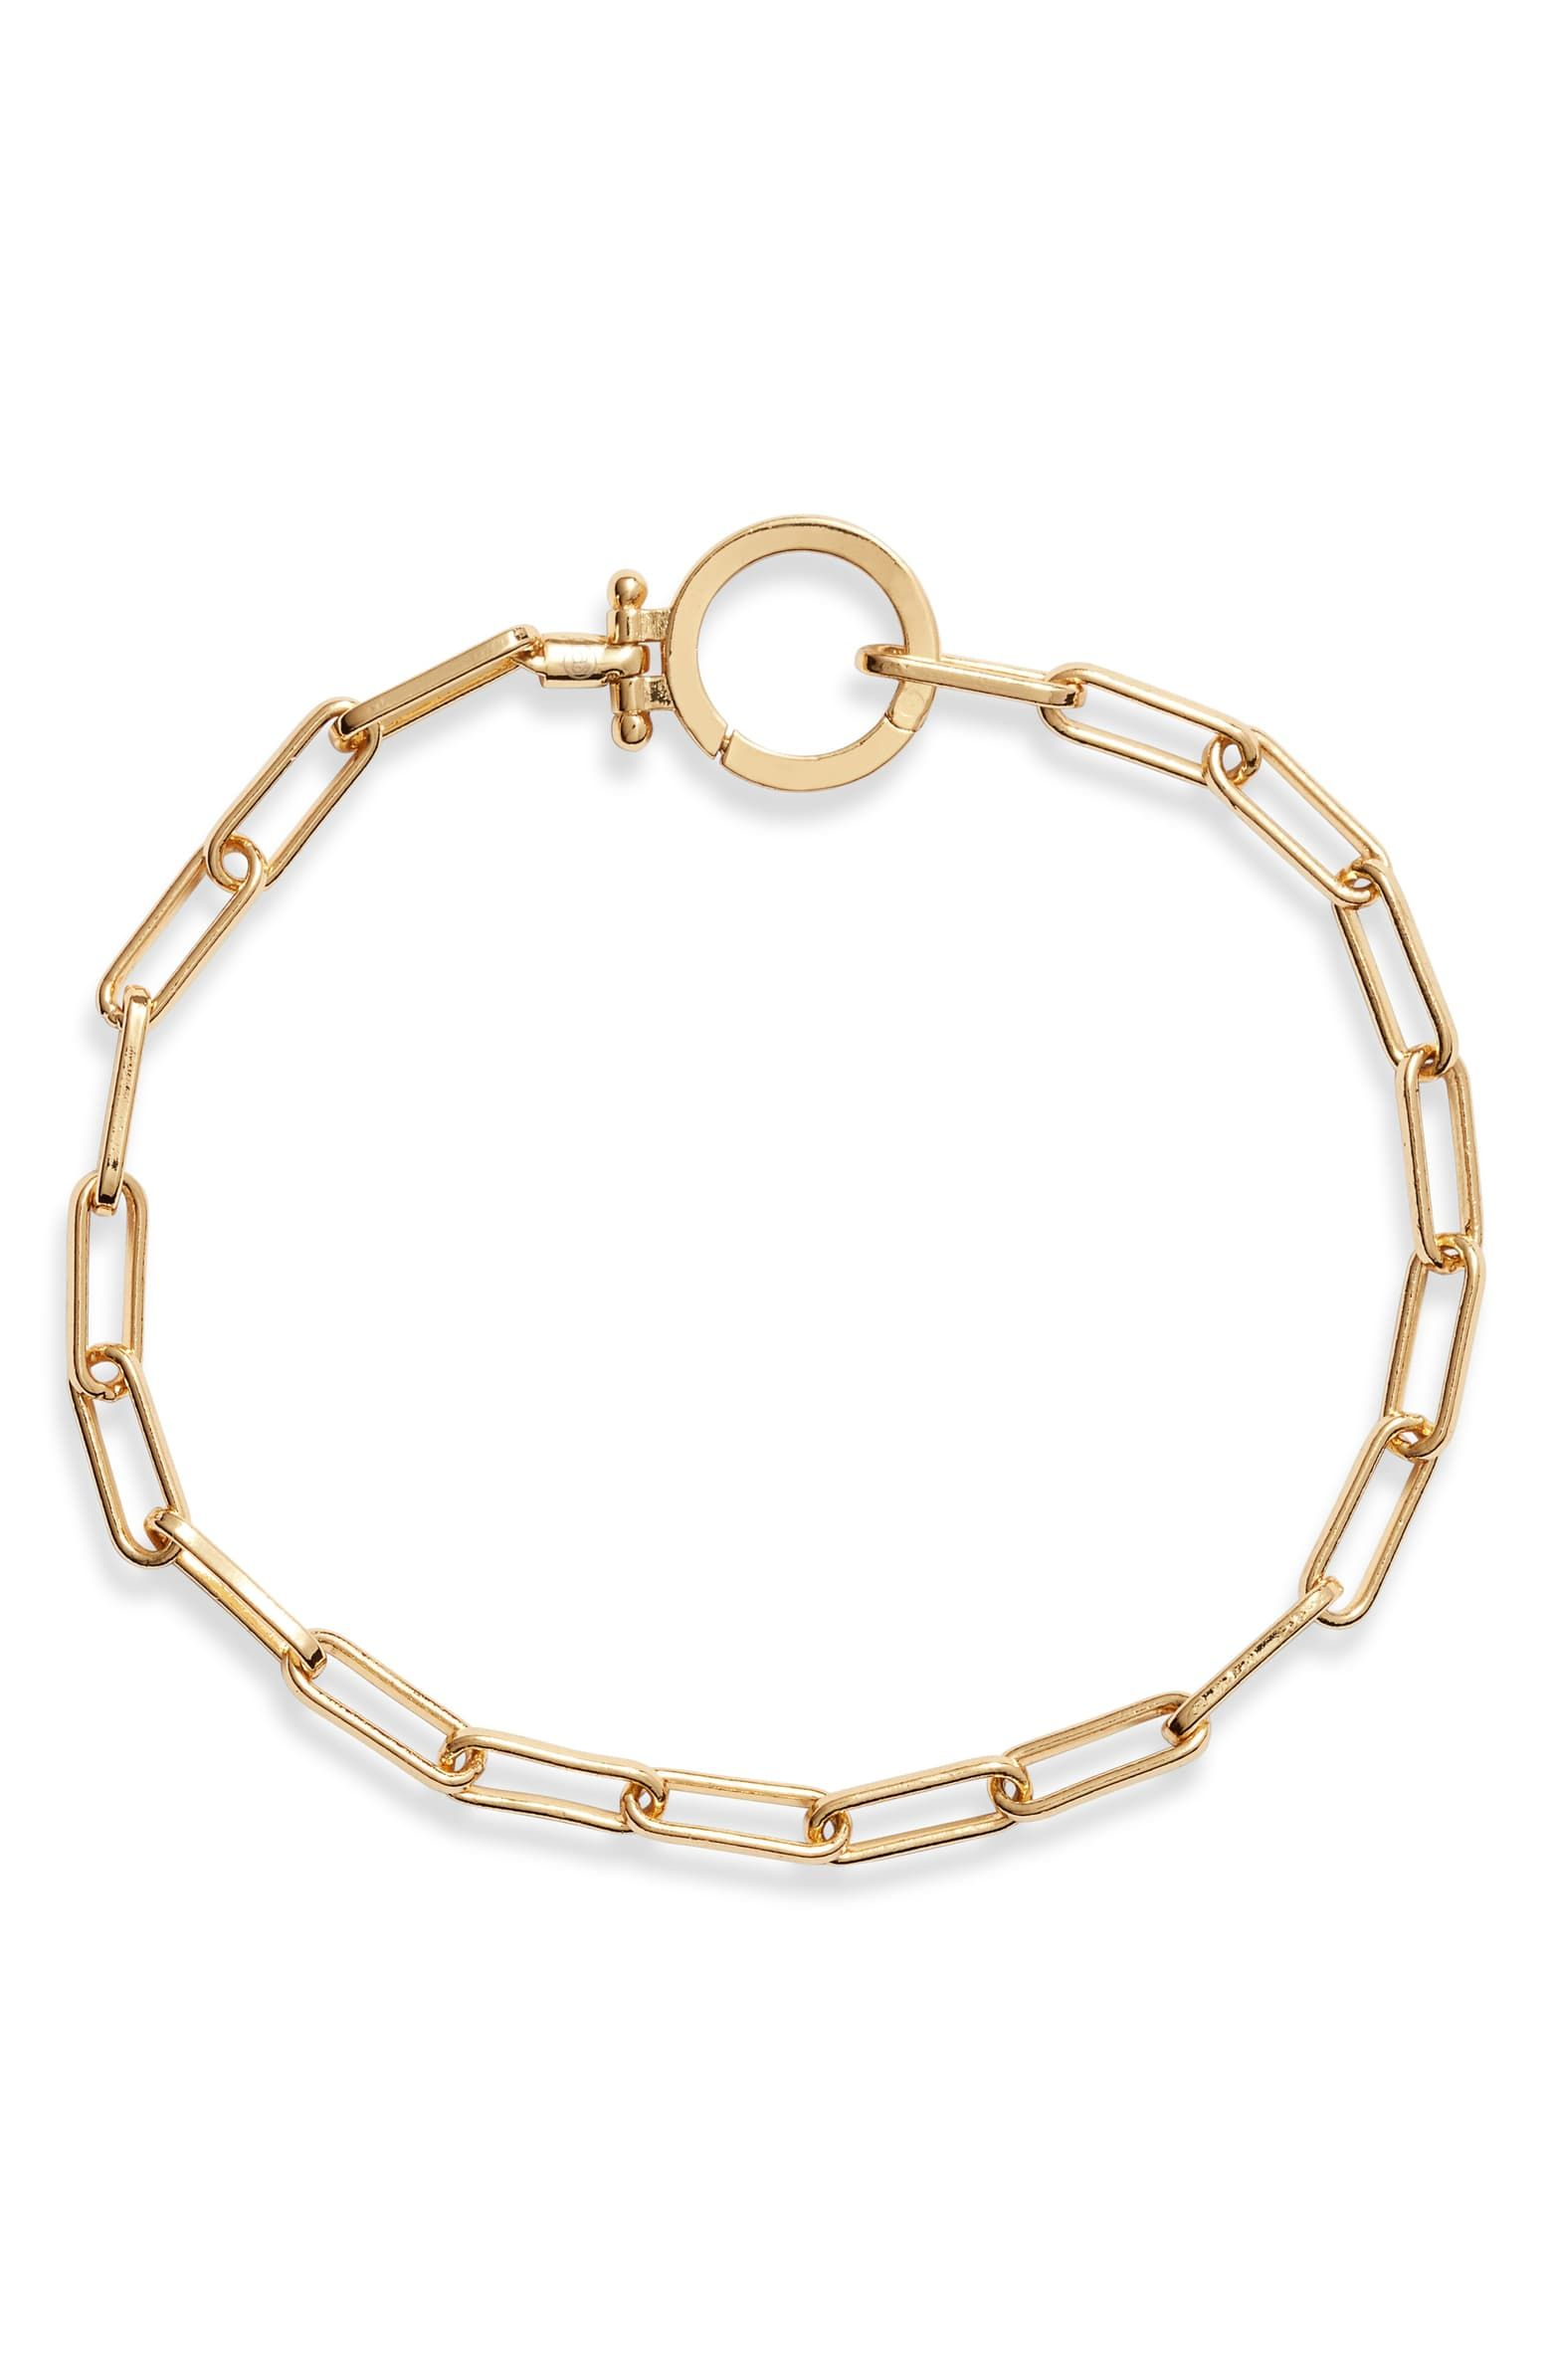 I am Jewellery-Obsessed—These Are the Items I am Buying Now 14